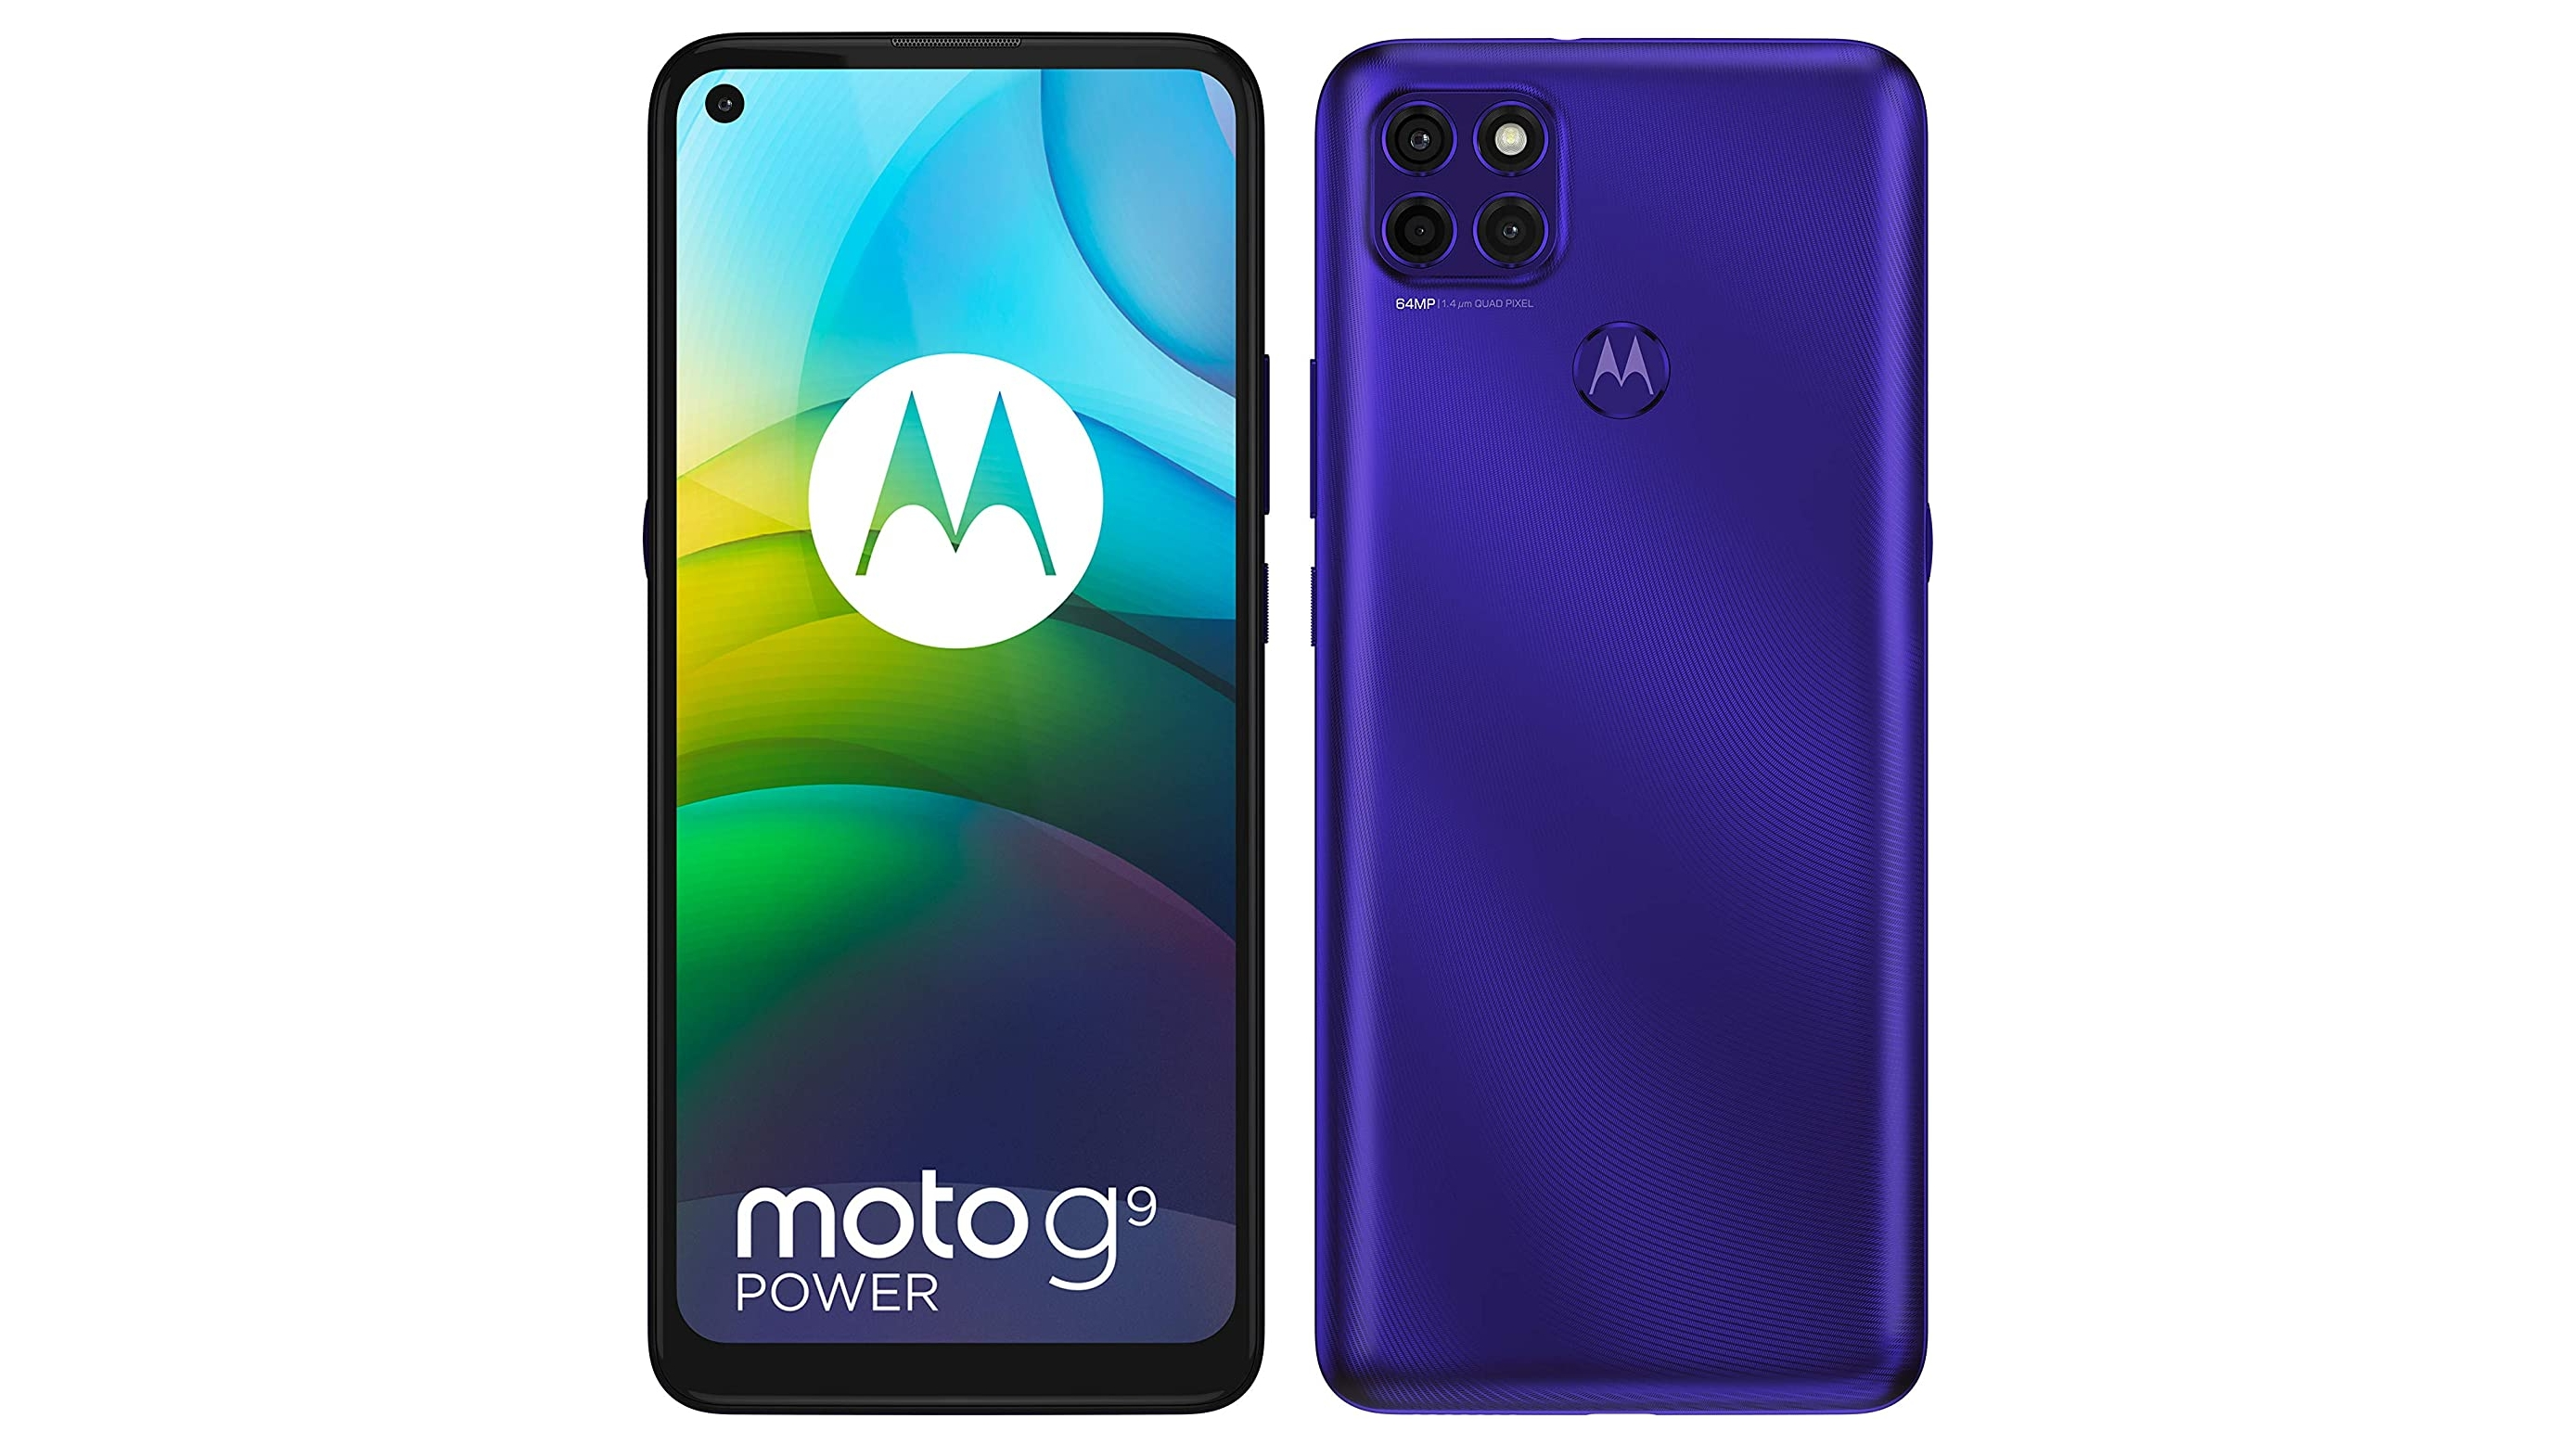 A Moto G9 Power against a white background